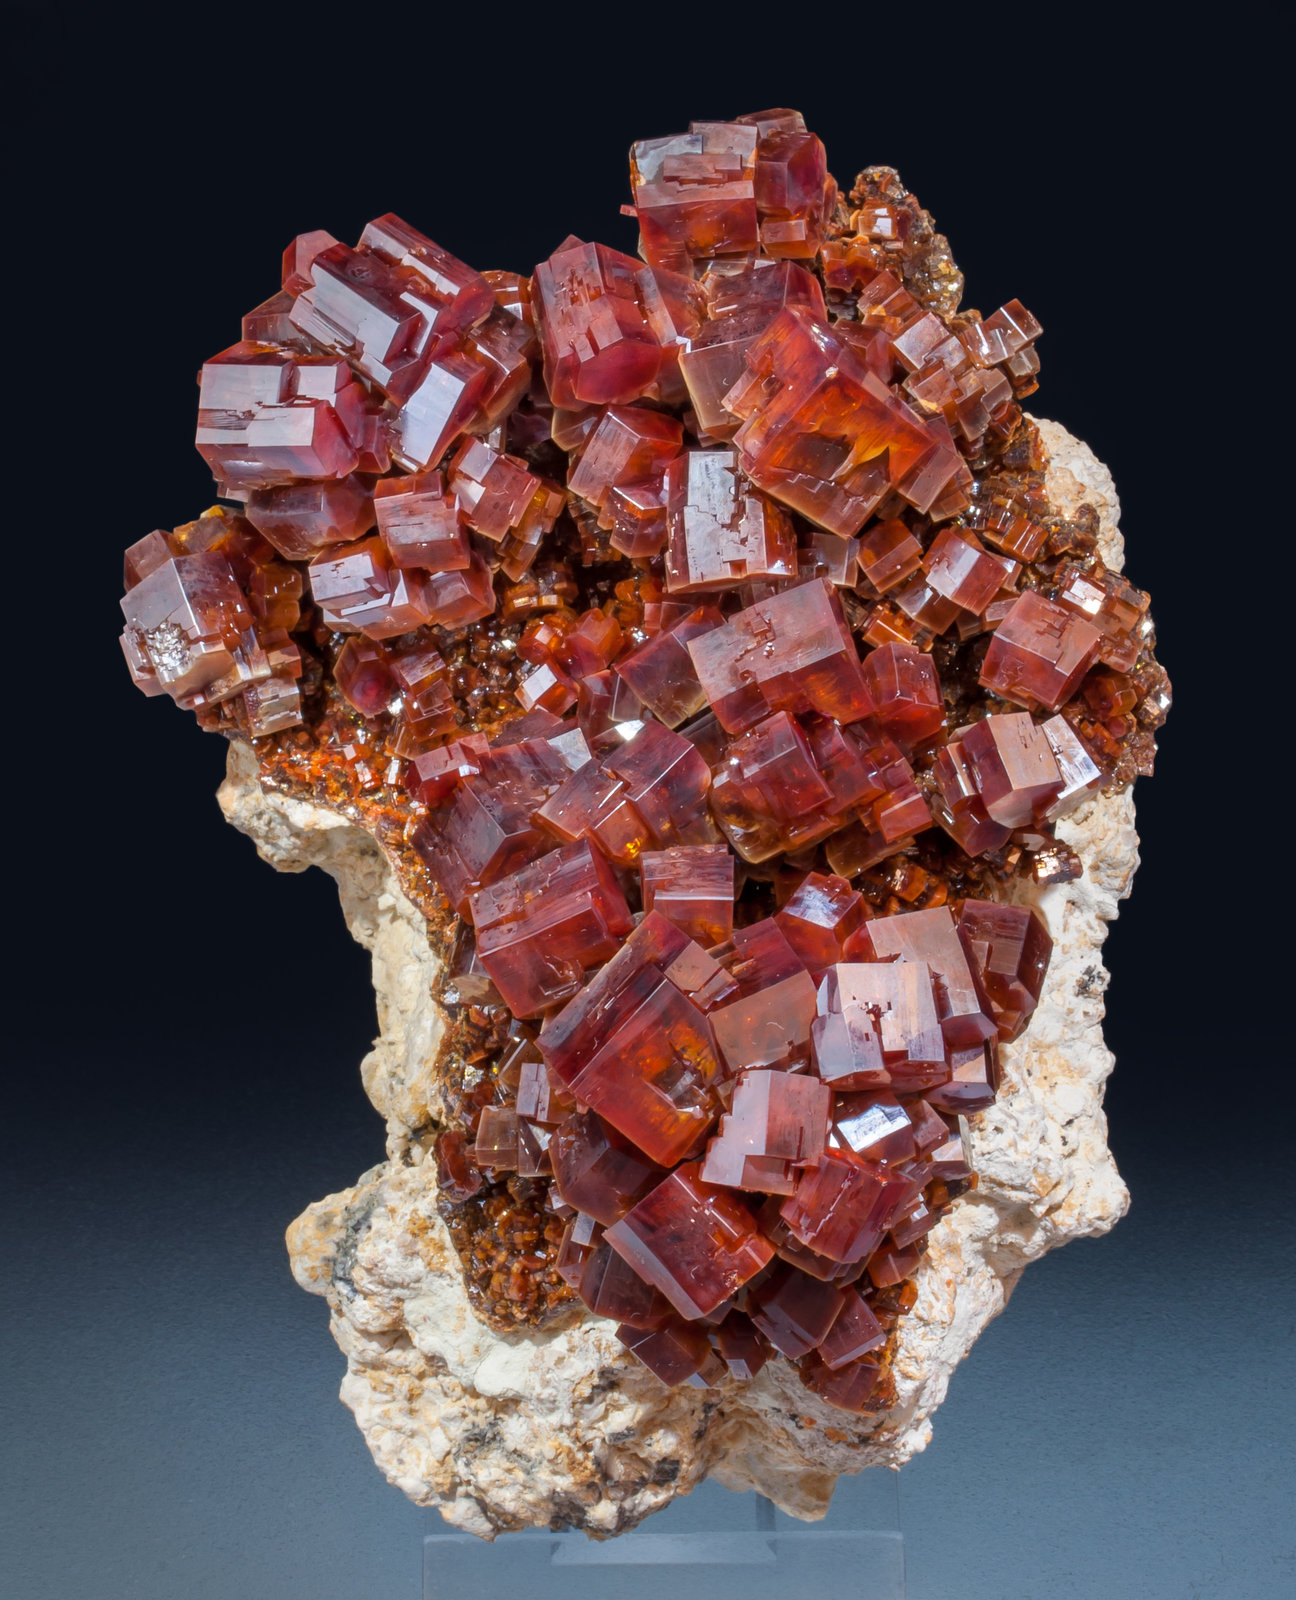 specimens/s_imagesAJ9/Vanadinite-ED67AJ9s.jpg